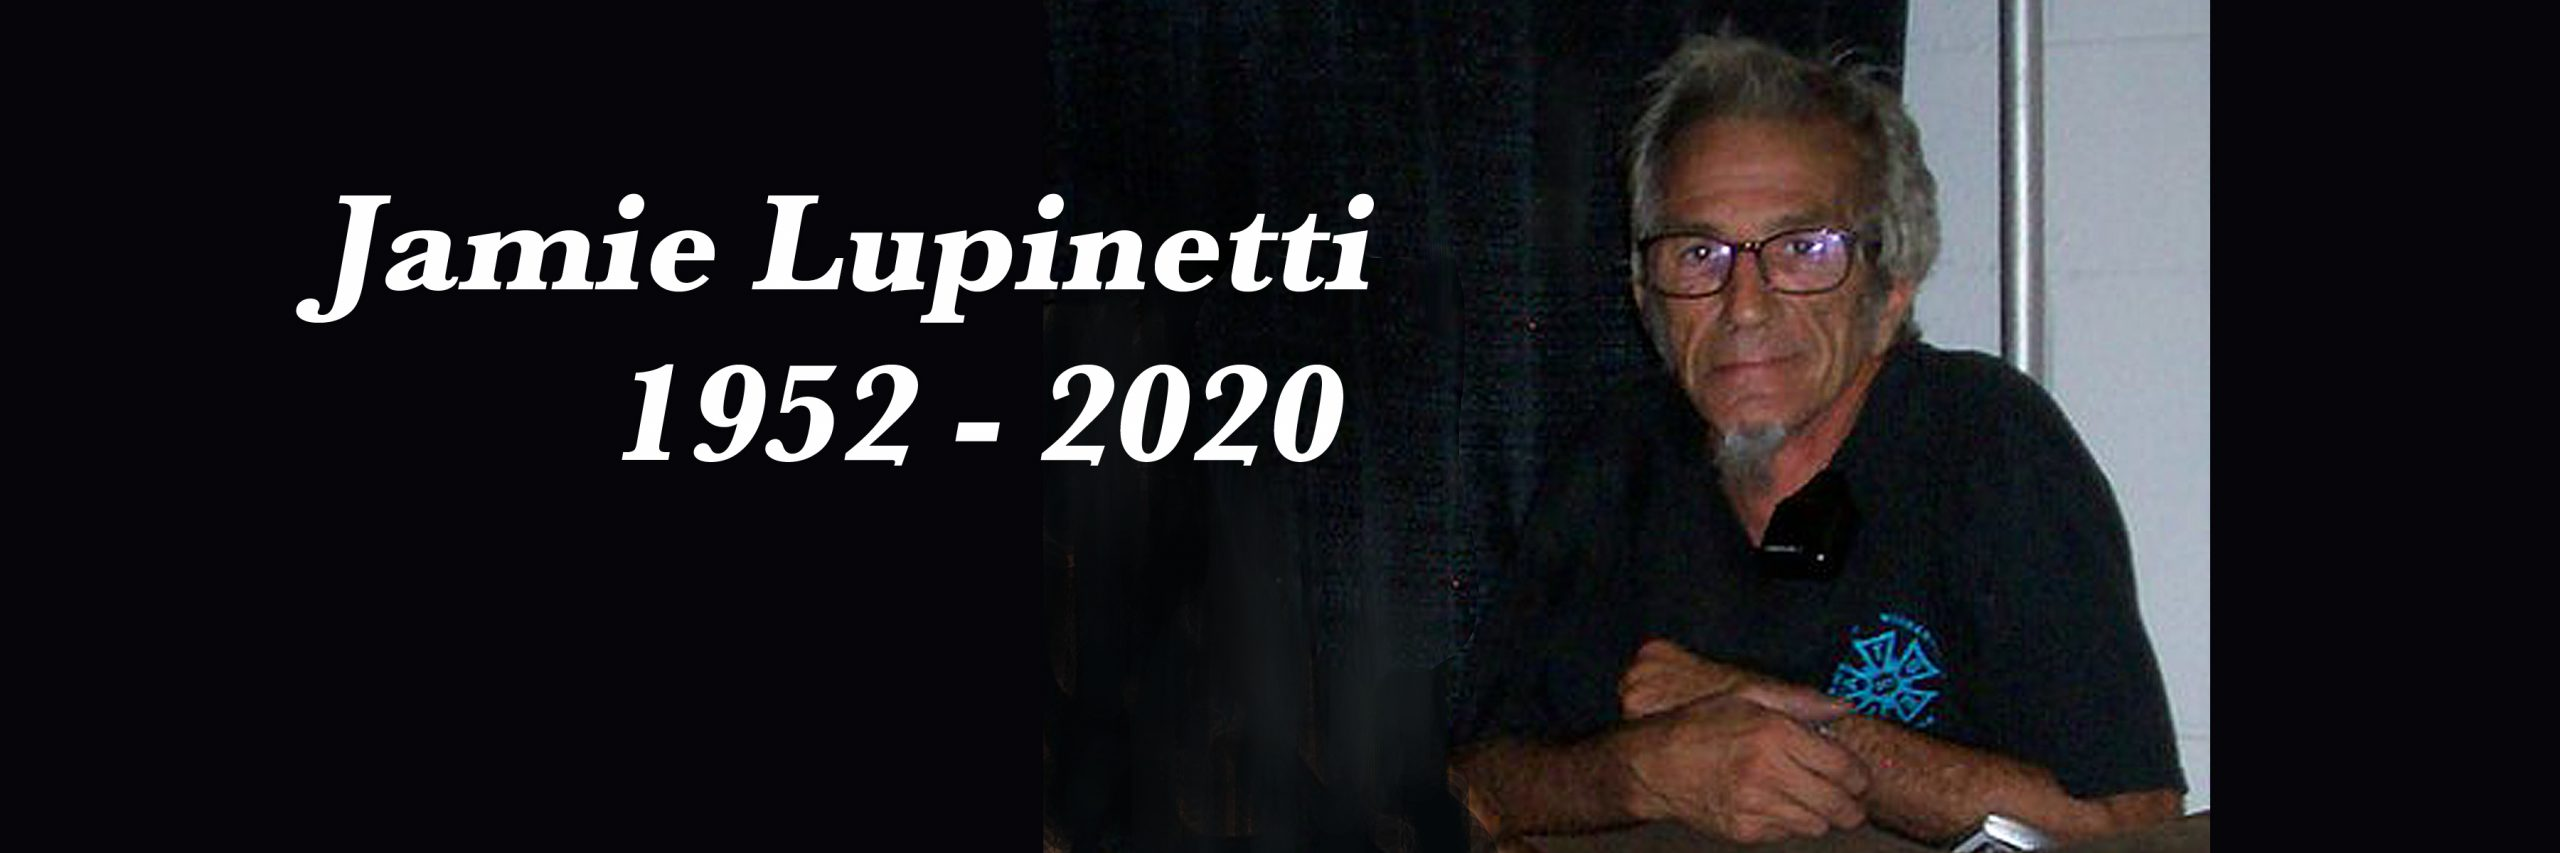 Jamie Lupinetti, September 30, 1952 to March 18, 2020